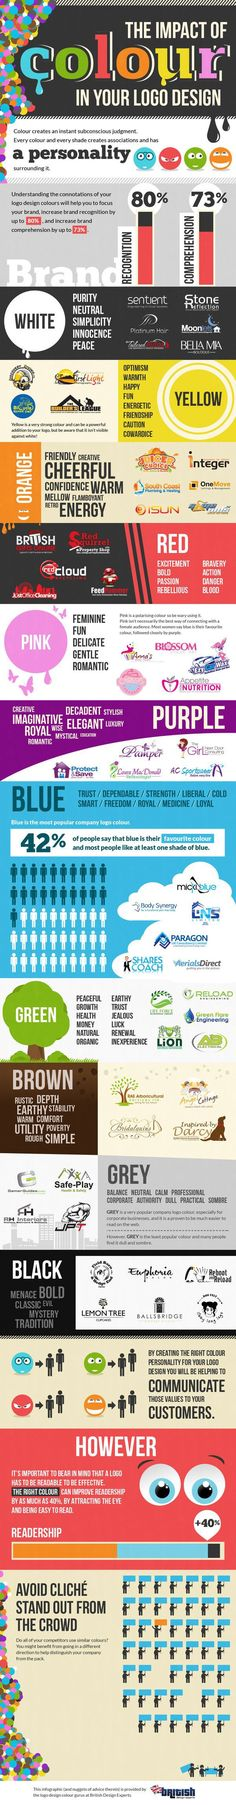 The Impact of Colour in Your Logo Design #Infographic